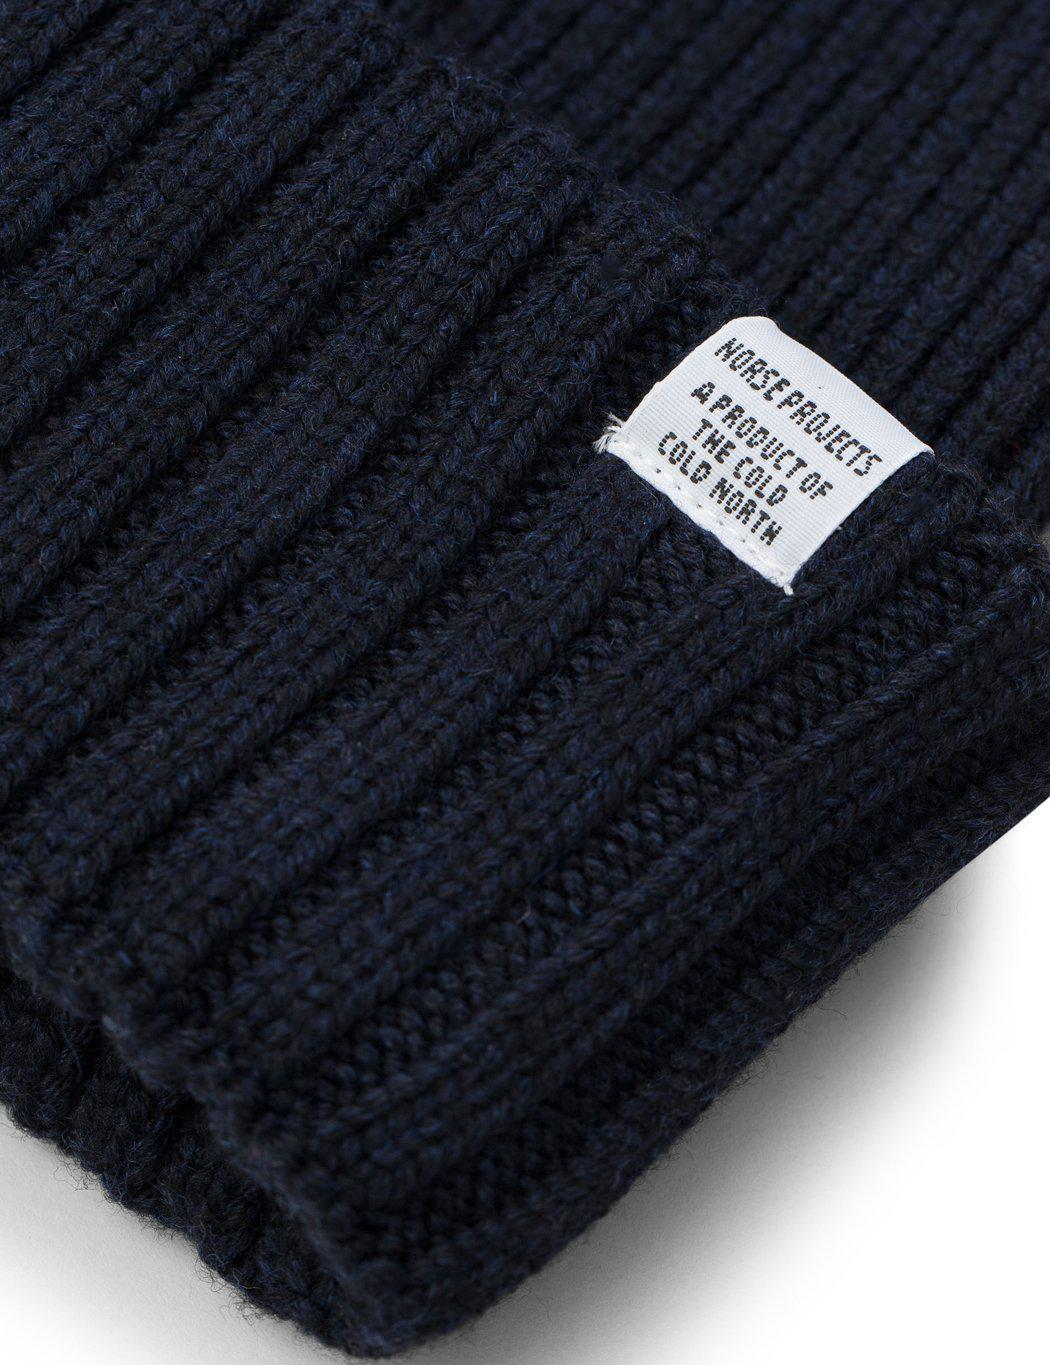 6f67a8a1b04 Lyst - Norse Projects Chunky Rib Beanie Hat in Blue for Men - Save 11%